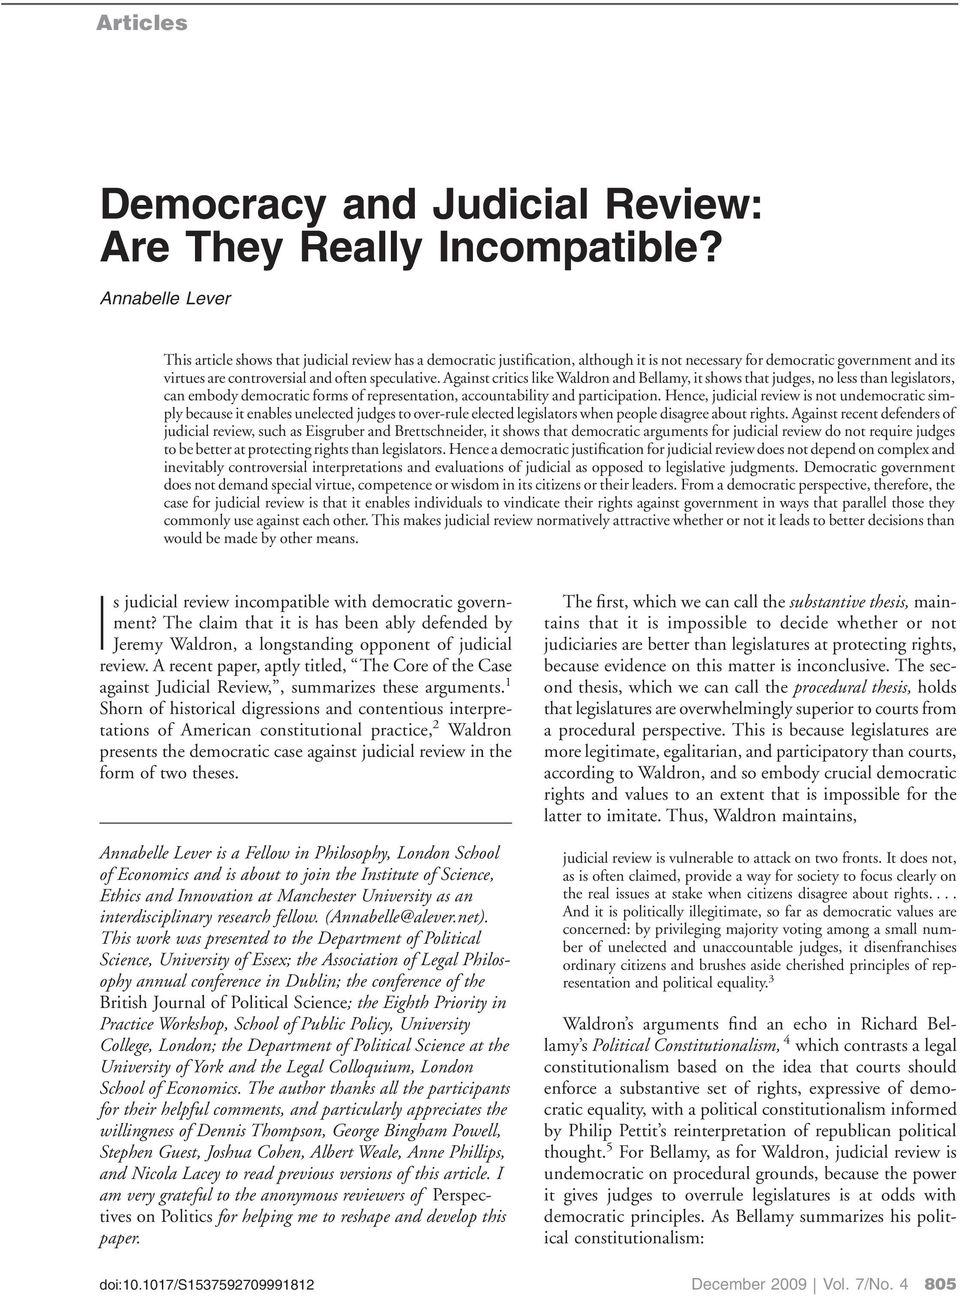 Against critics like Waldron and Bellamy, it shows that judges, no less than legislators, can embody democratic forms of representation, accountability and participation.